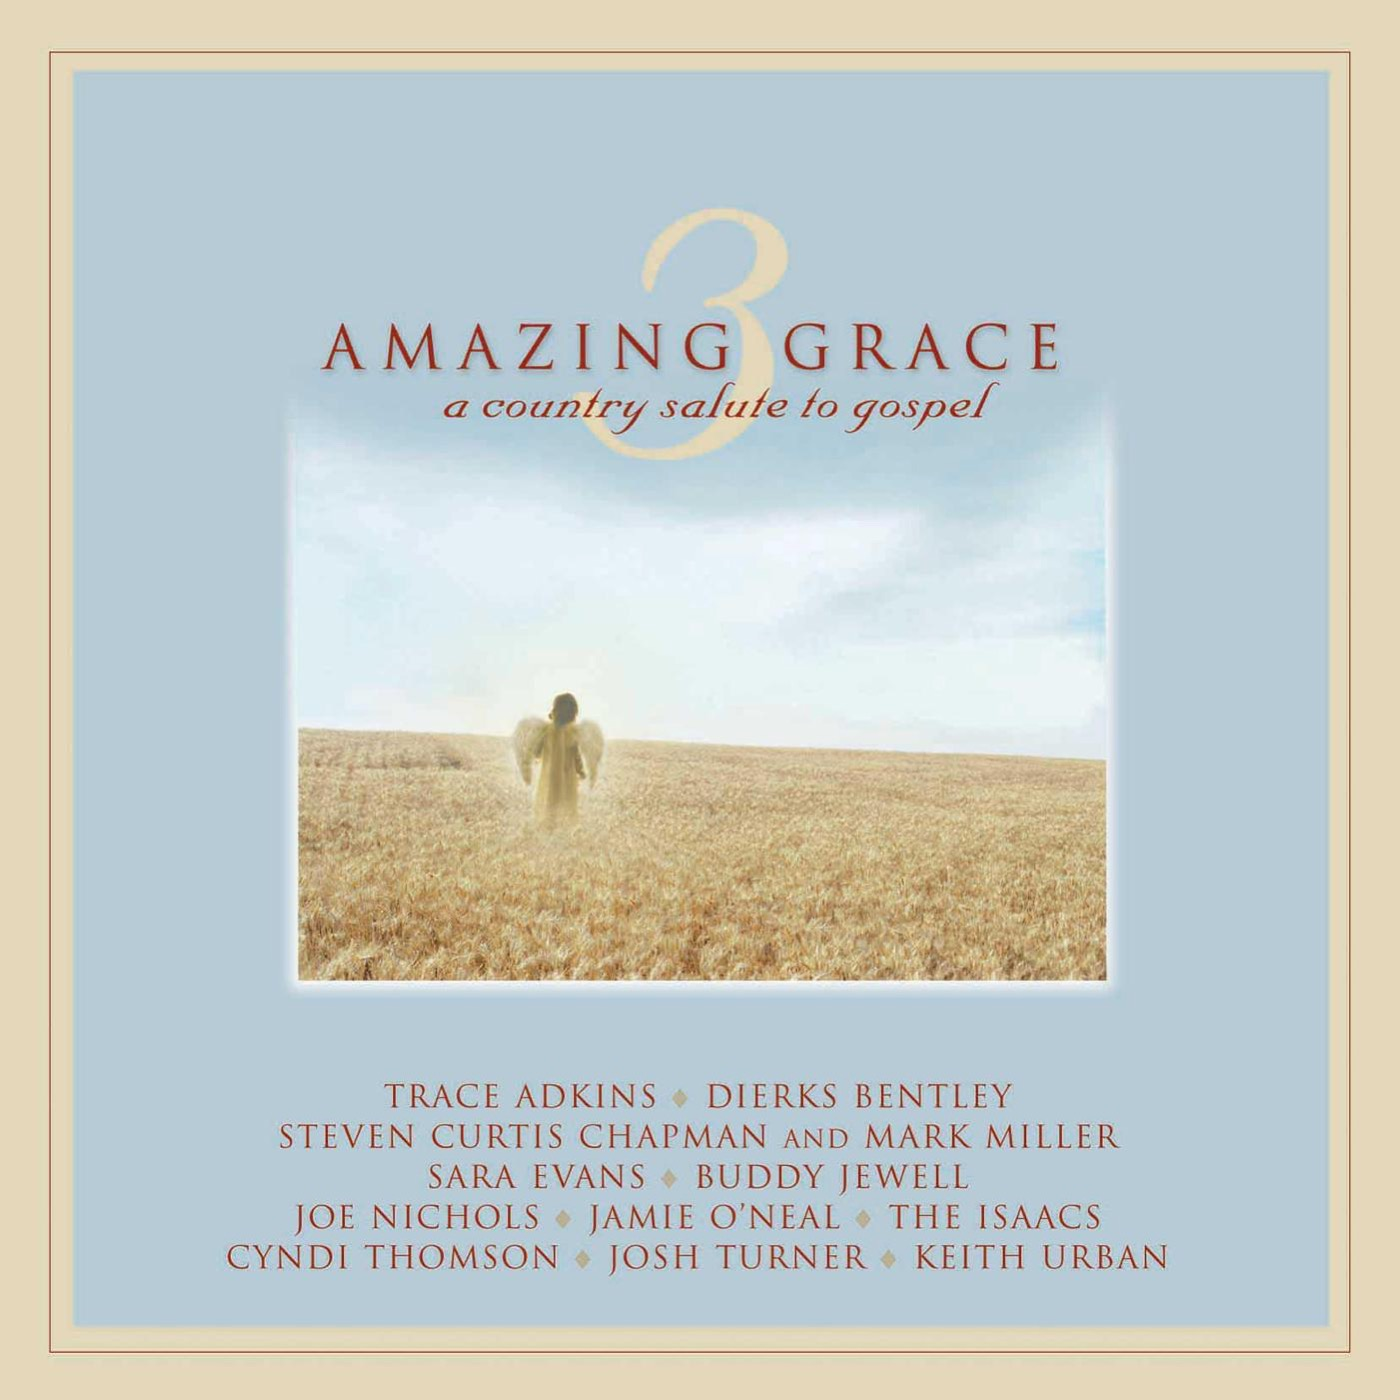 Amazing Grace: Lari White - Amazing Grace Lyrics Meaning